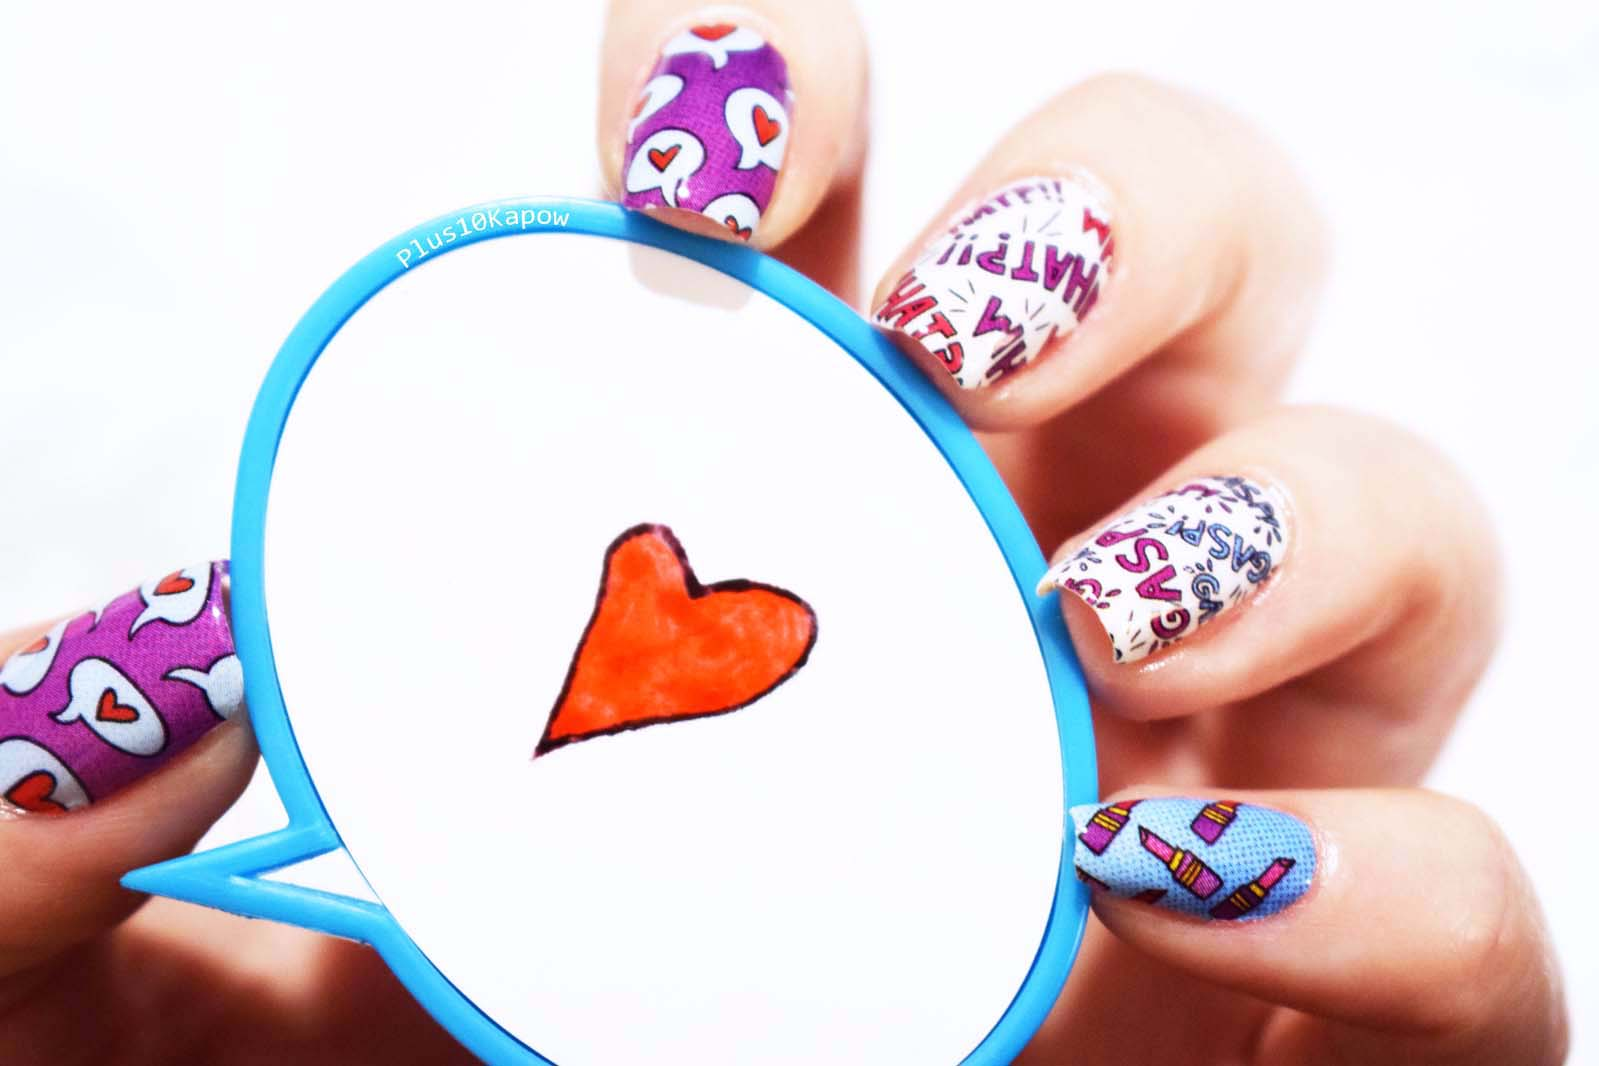 Espionage Cosmetics Best Friends Forever nail wraps Plus10Kapow